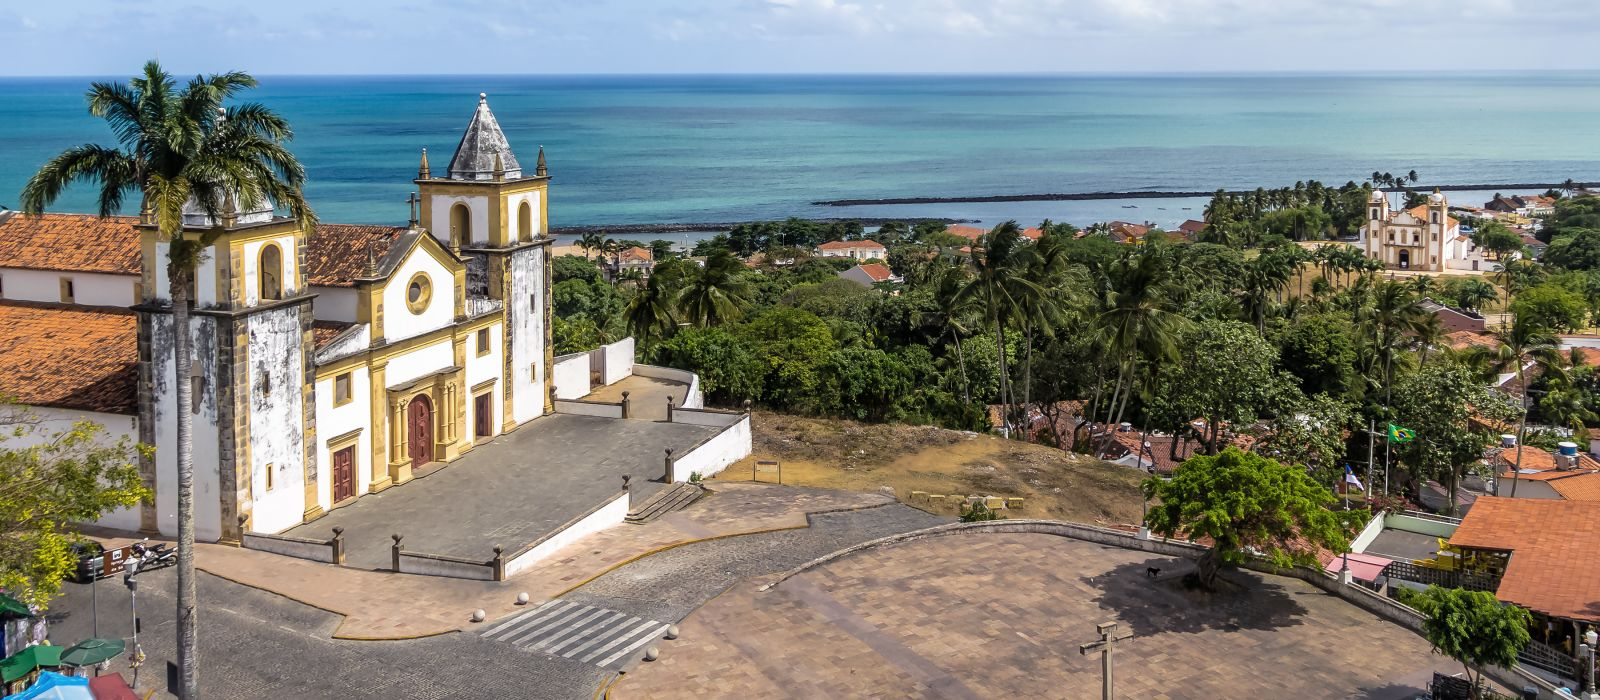 Aerial View of Se Cathedral - Olinda, Pernambuco, Brazil, South America